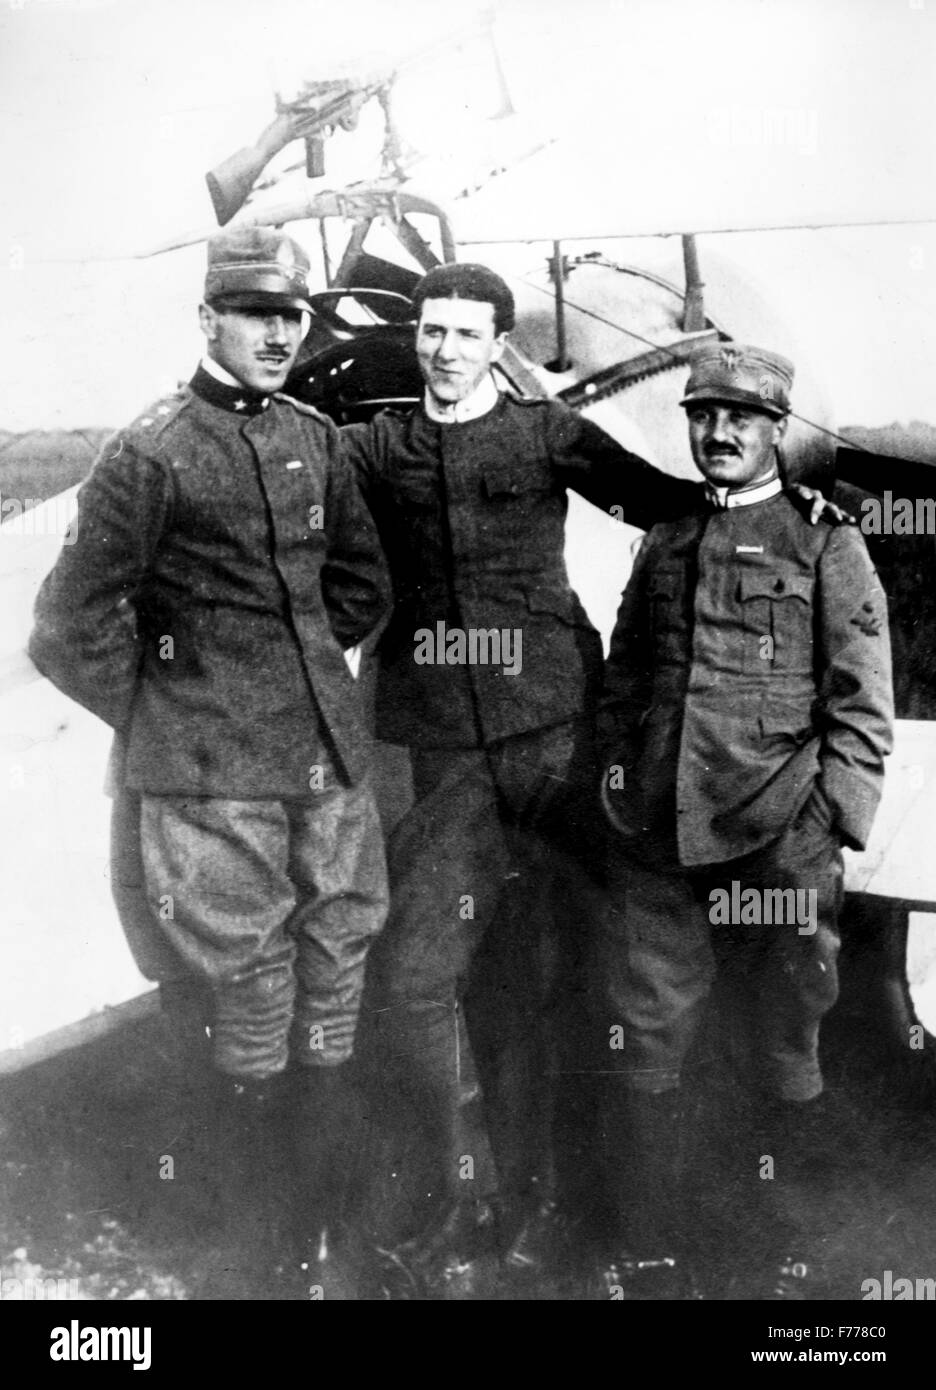 Lieutenant Francesco Baracca with two other airmen (far left) posing at the school Caproni in Malpensa,1915 - Stock Image